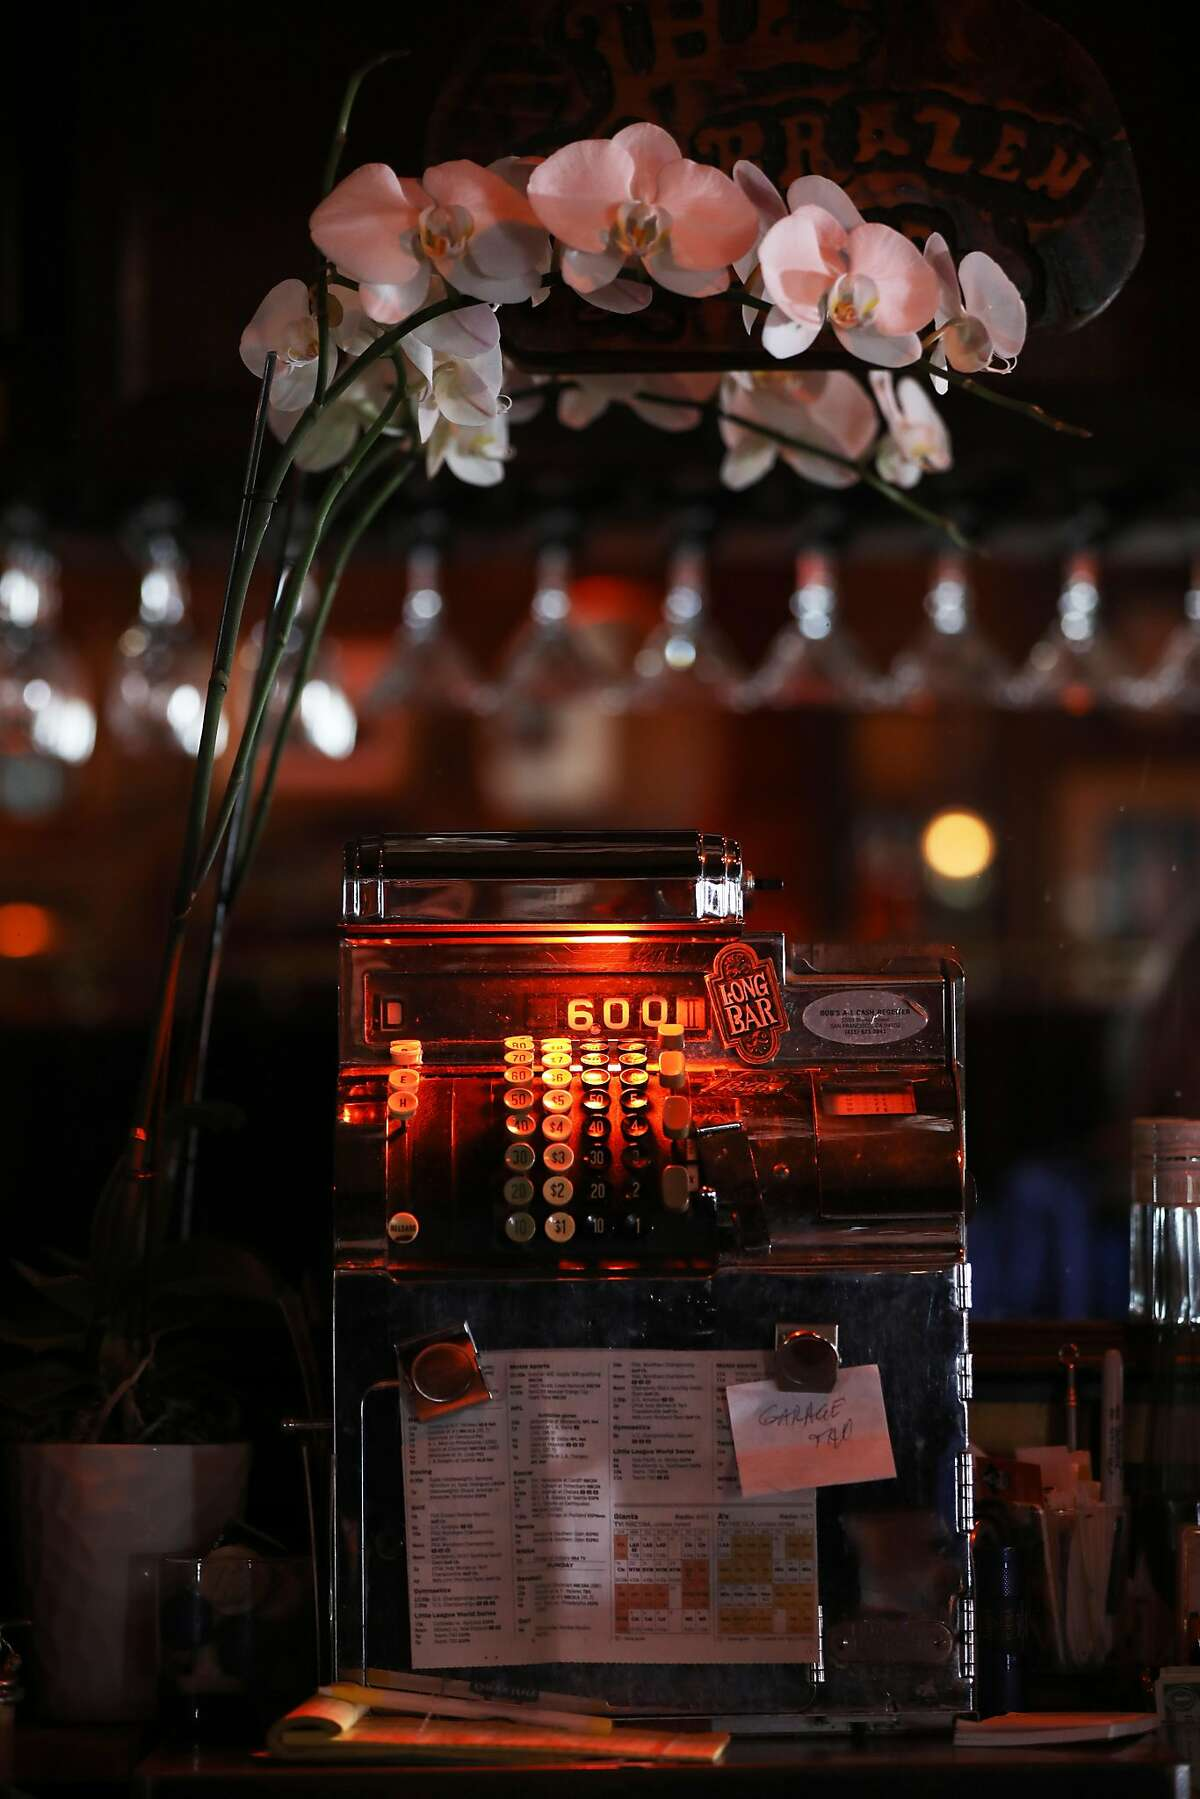 The old cash register at Brazen Head, located at 3166 Buchanan St., in San Francisco, Calif., on Saturday, August 18, 2018.